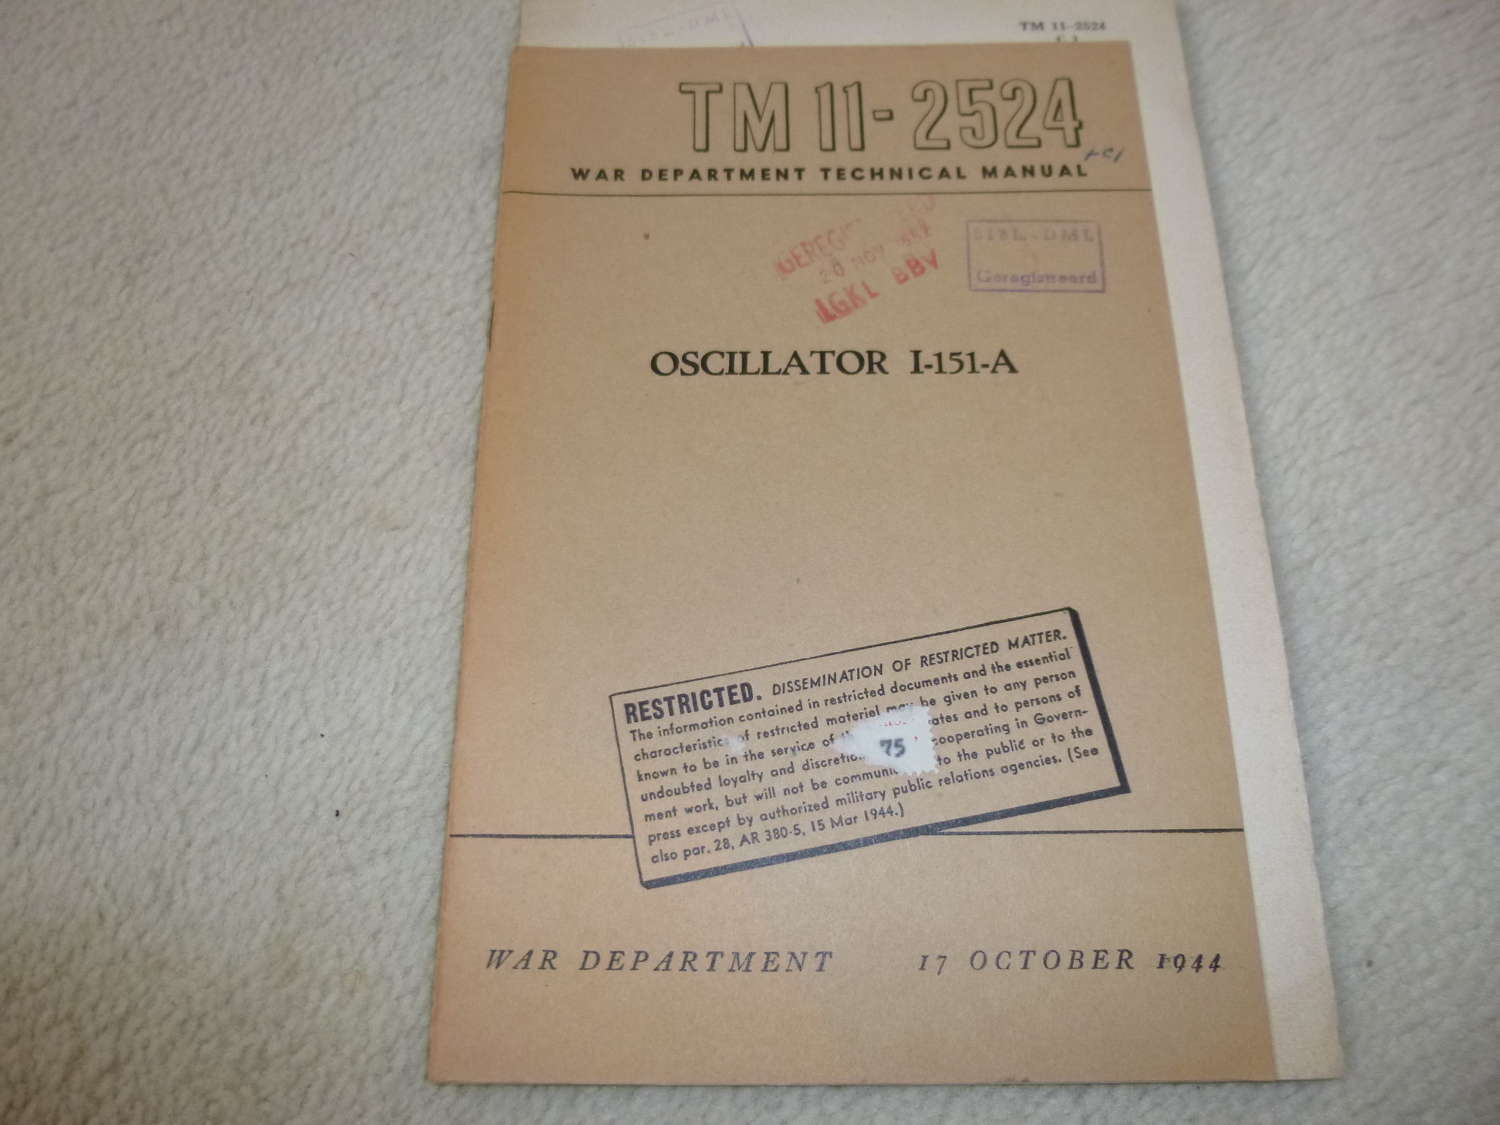 US Army TM11-2524 Oscillator I-151-A Manual